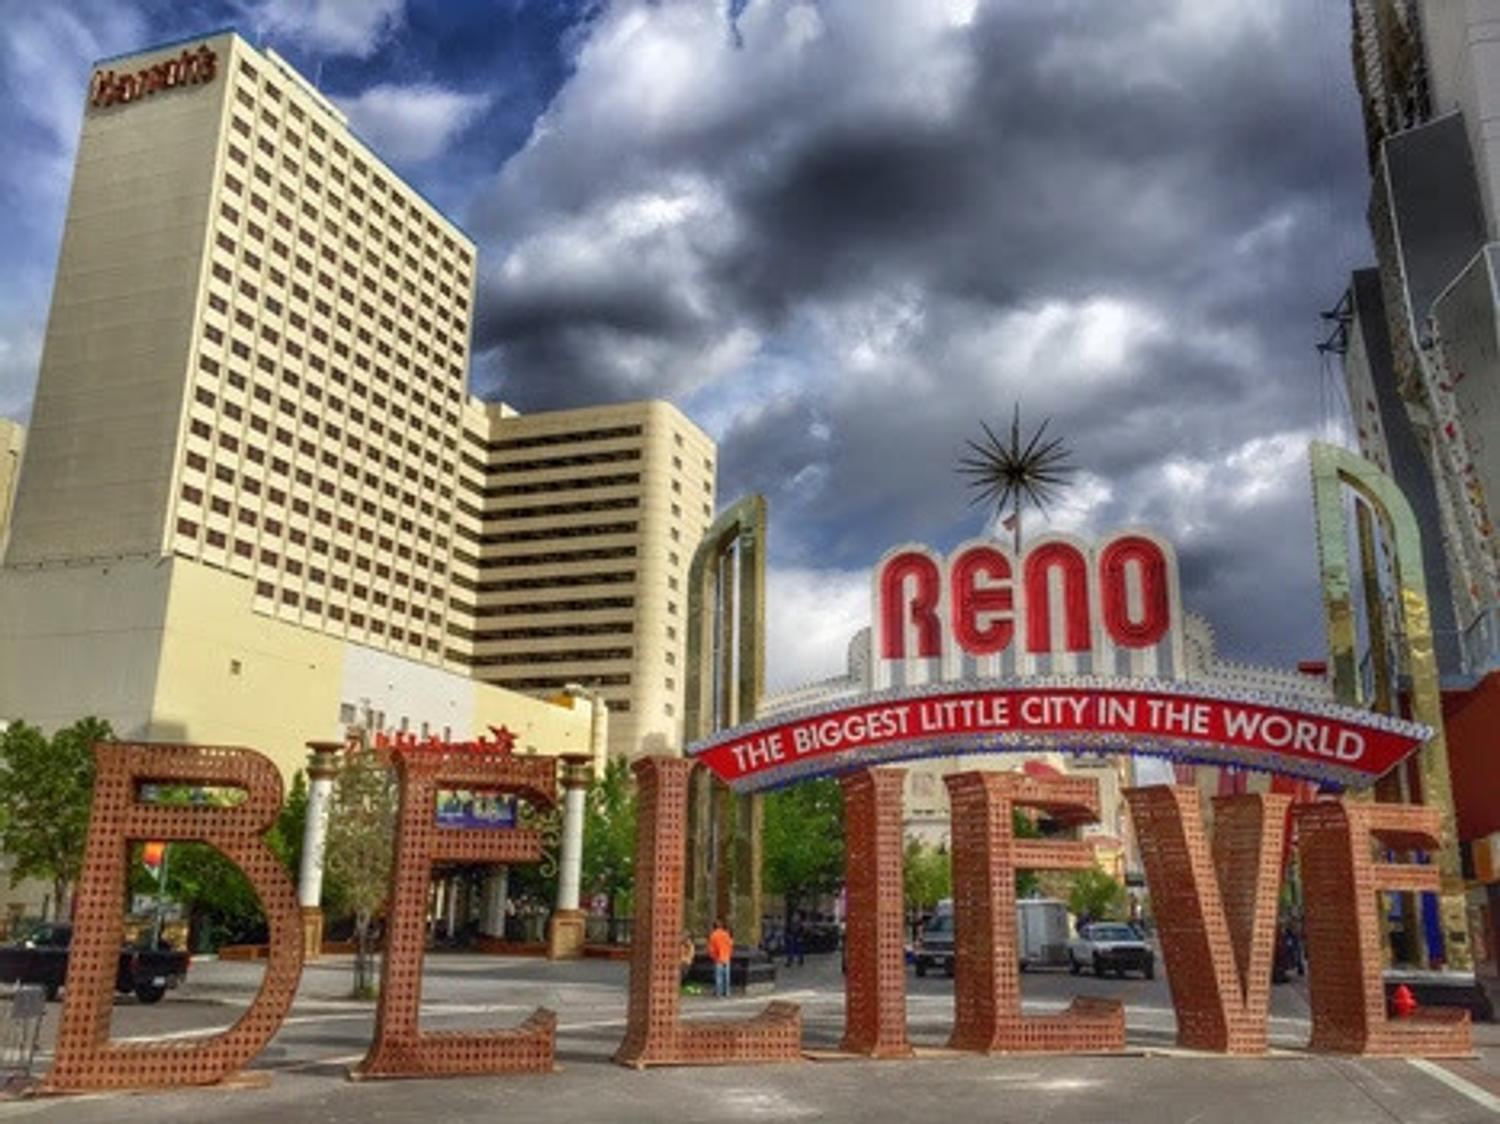 City Of Reno Nv Purchases Sculpture By Artist Laura